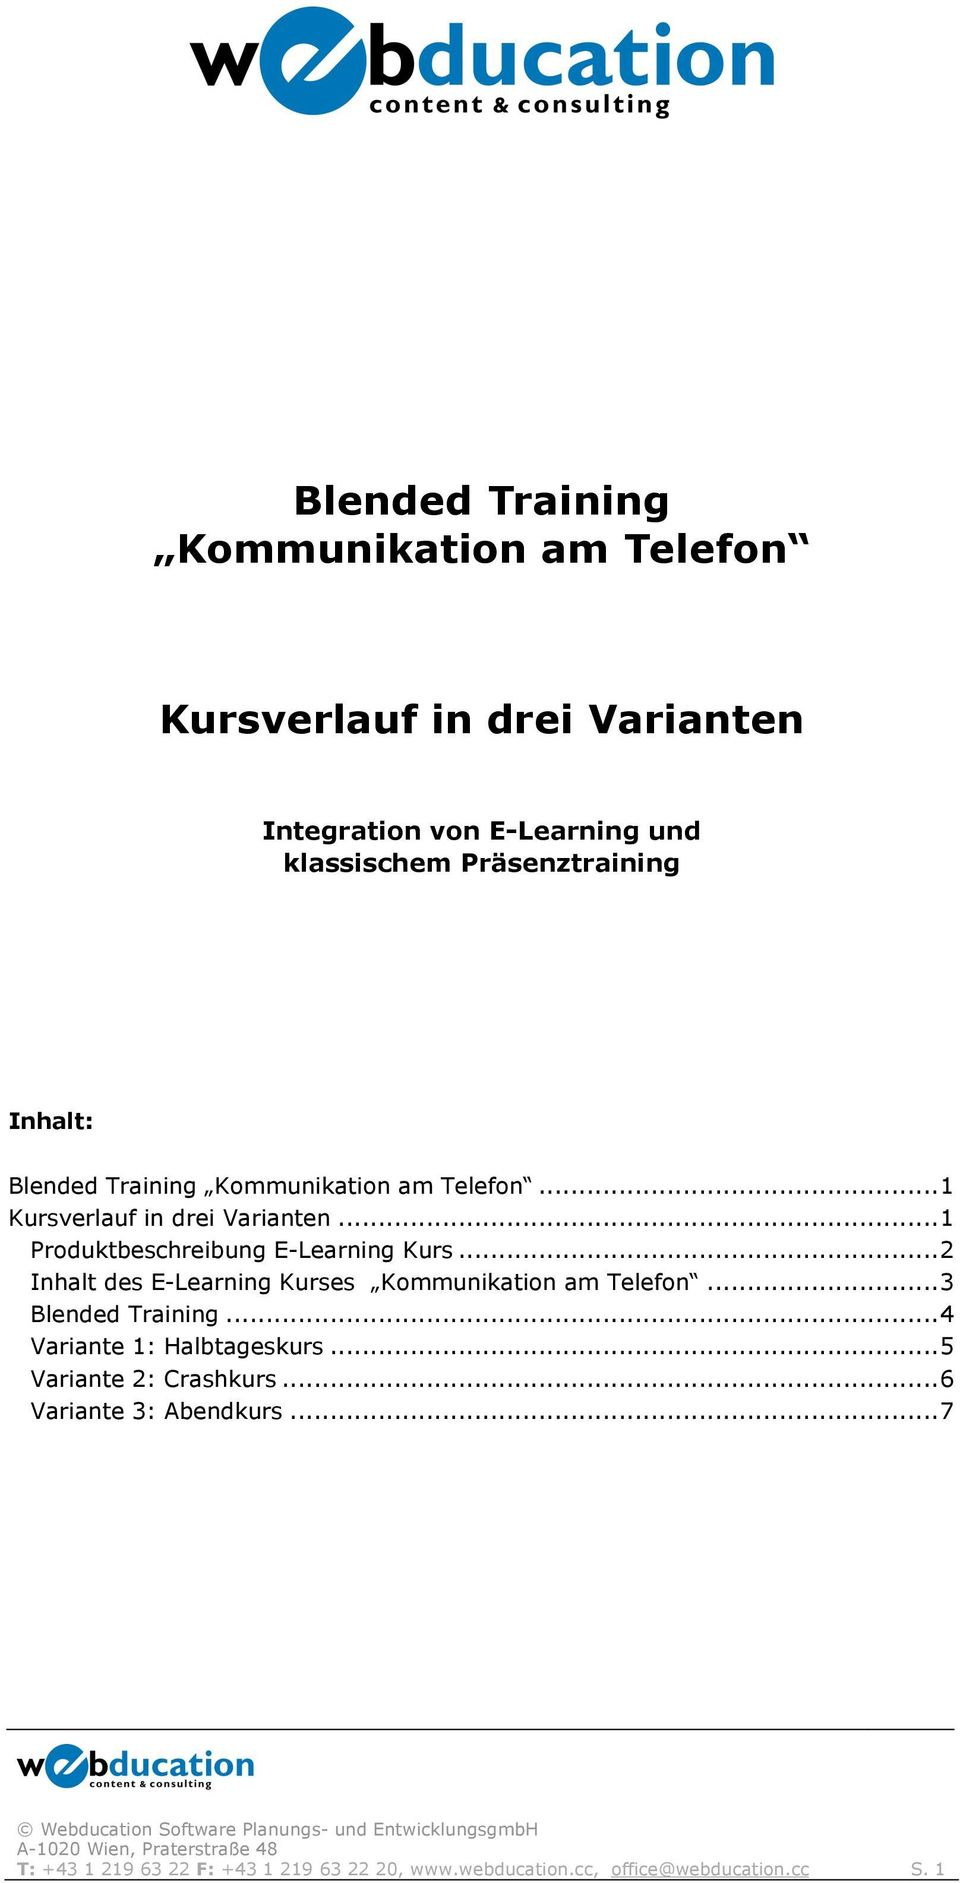 ..1 Produktbeschreibung E-Learning Kurs...2 Inhalt des E-Learning Kurses Kommunikation am Telefon...3 Blended Training.